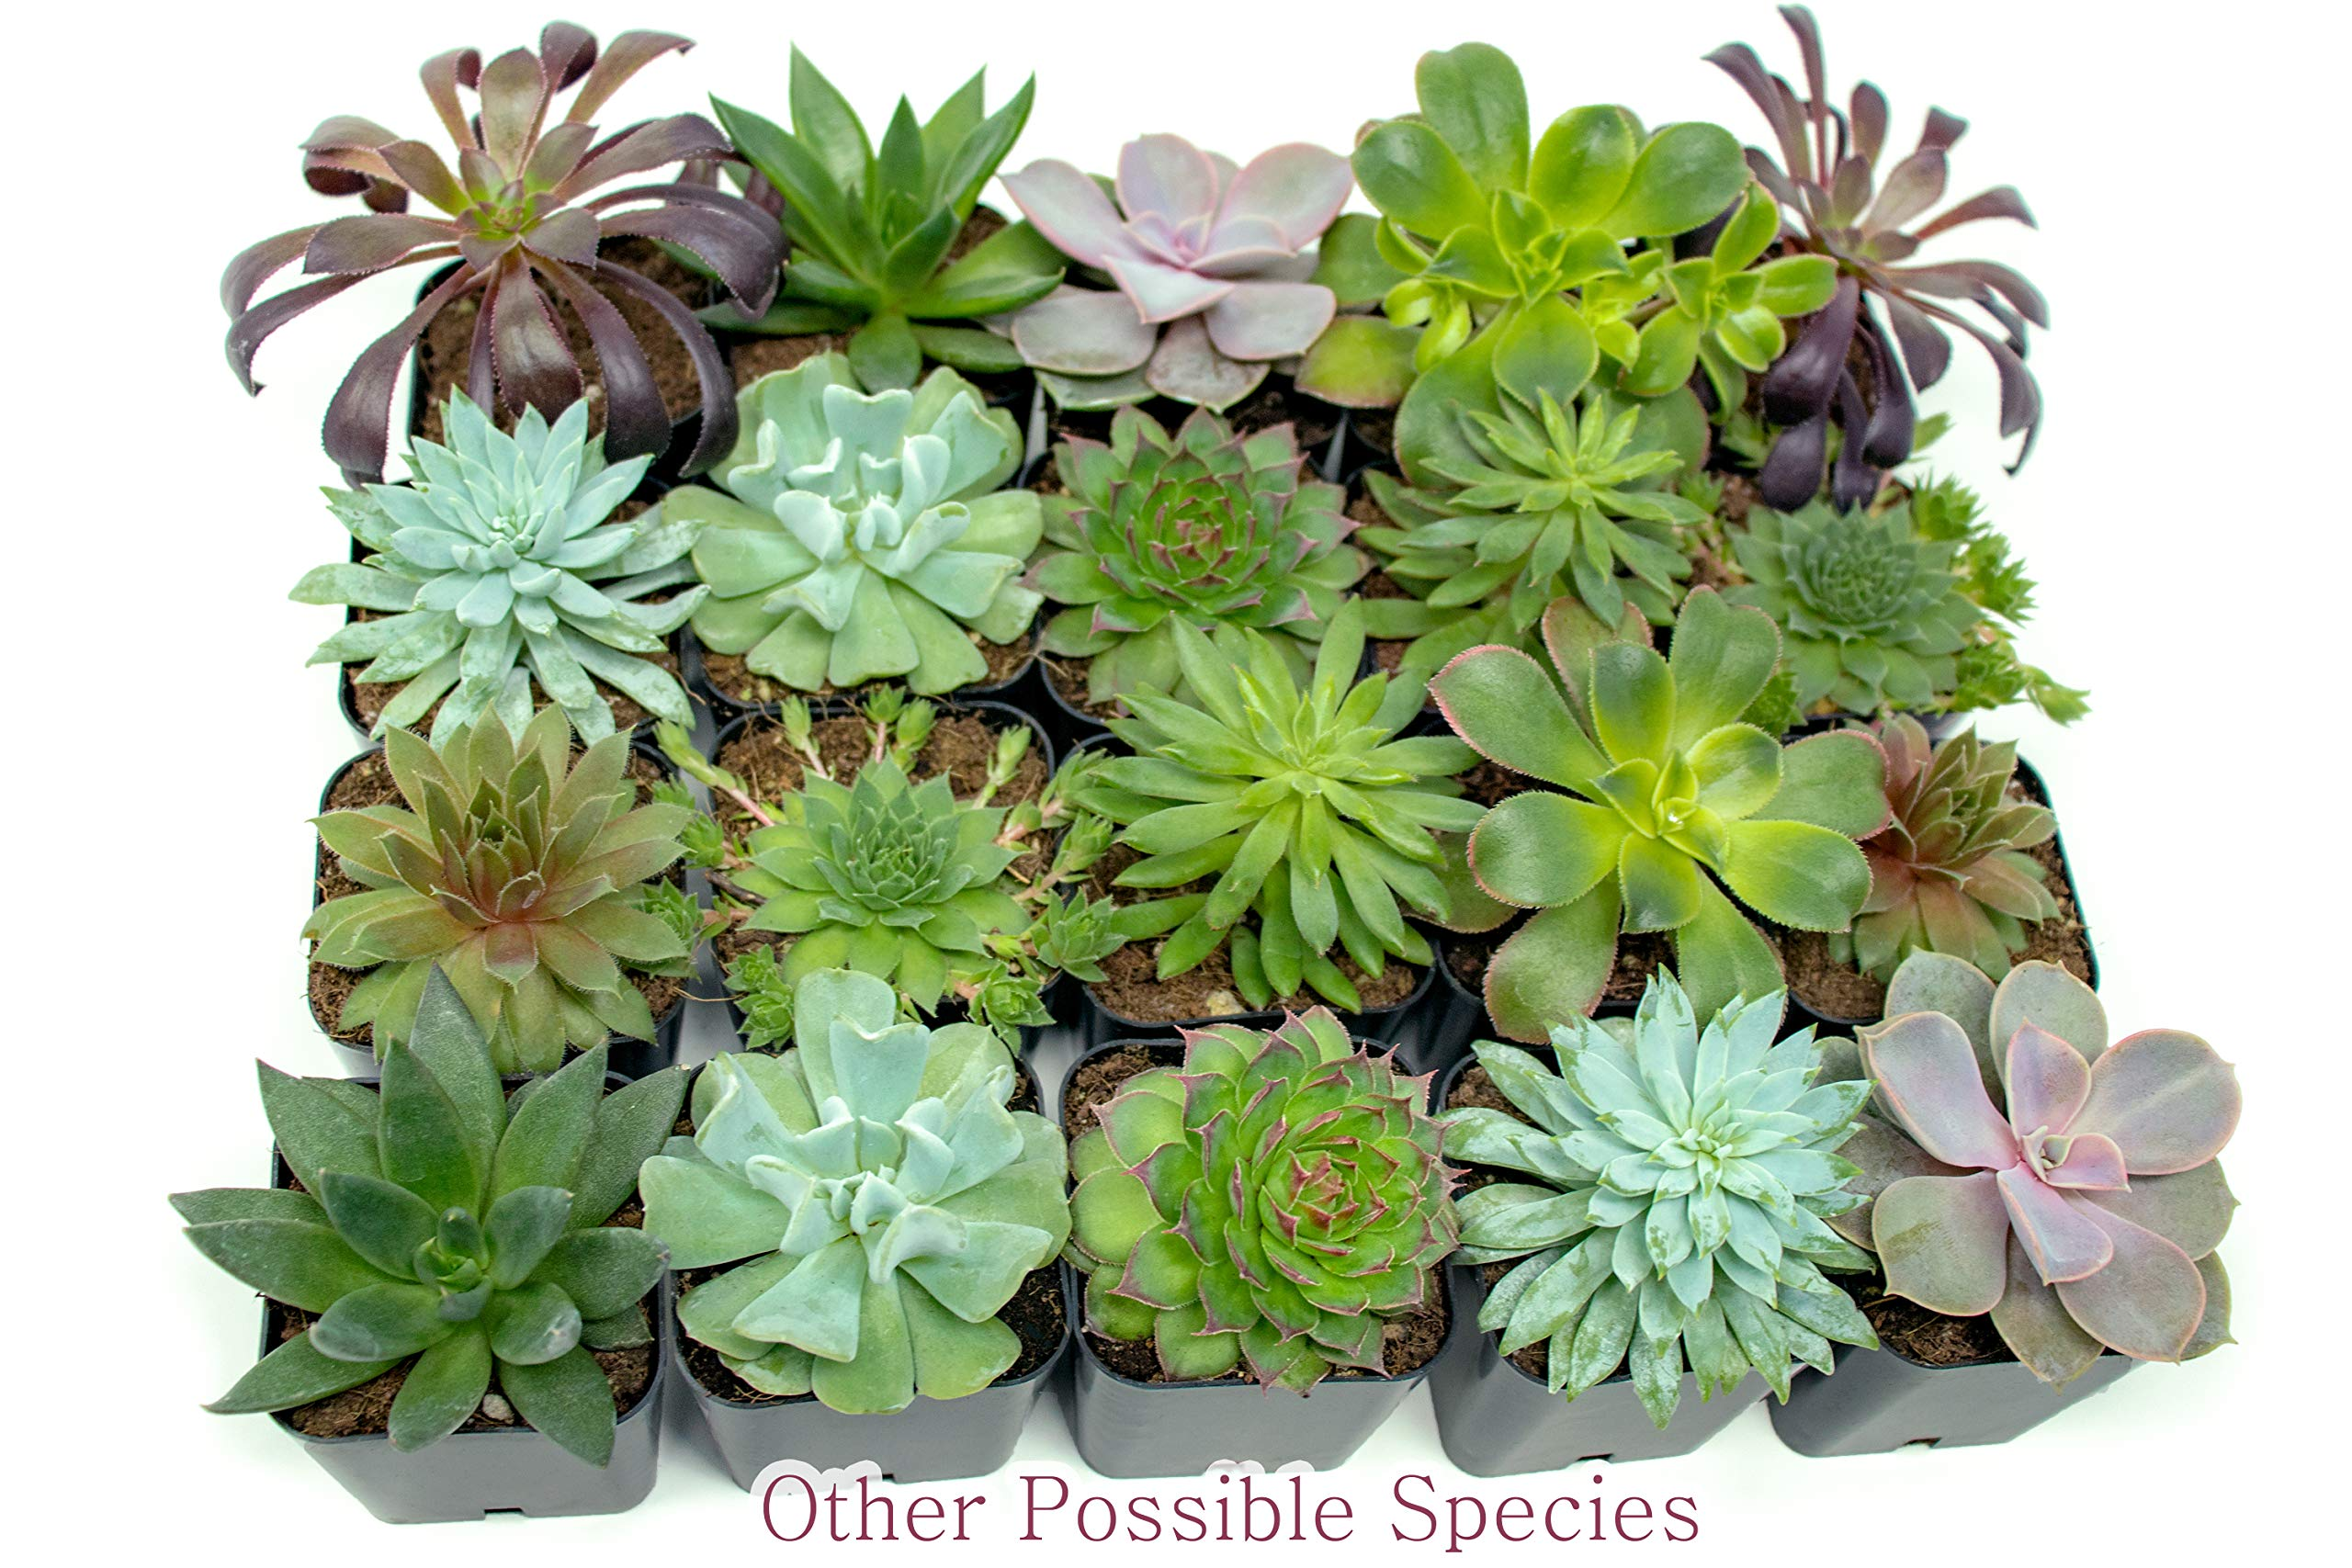 Succulent Plants (5 Pack), Fully Rooted in Planter Pots with Soil - Real Live Potted Succulents / Unique Indoor Cactus… 10 HAND SELECTED: Every pack of succulents we send is hand-picked. You will receive a unique collection of species that are FULLY ROOTED IN 2 INCH POTS, which will be similar to the product photos (see photo 2 for scale). Note that we rotate our nursery stock often, so the exact species we send changes every week. THE EASIEST HOUSE PLANTS: More appealing than artificial plastic or fake faux plants, and care is a cinch. If you think you can't keep houseplants alive, you're wrong; our succulents don't require fertilizer and can be planted in a decorative pot of your choice within seconds. DIY HOME DECOR: The possibilities are only limited by your imagination; display them in a plant holder, a wall mount, a geometric glass vase, or even in a live wreath. Because of their amazingly low care requirements, they can even make the perfect desk centerpiece for your office.